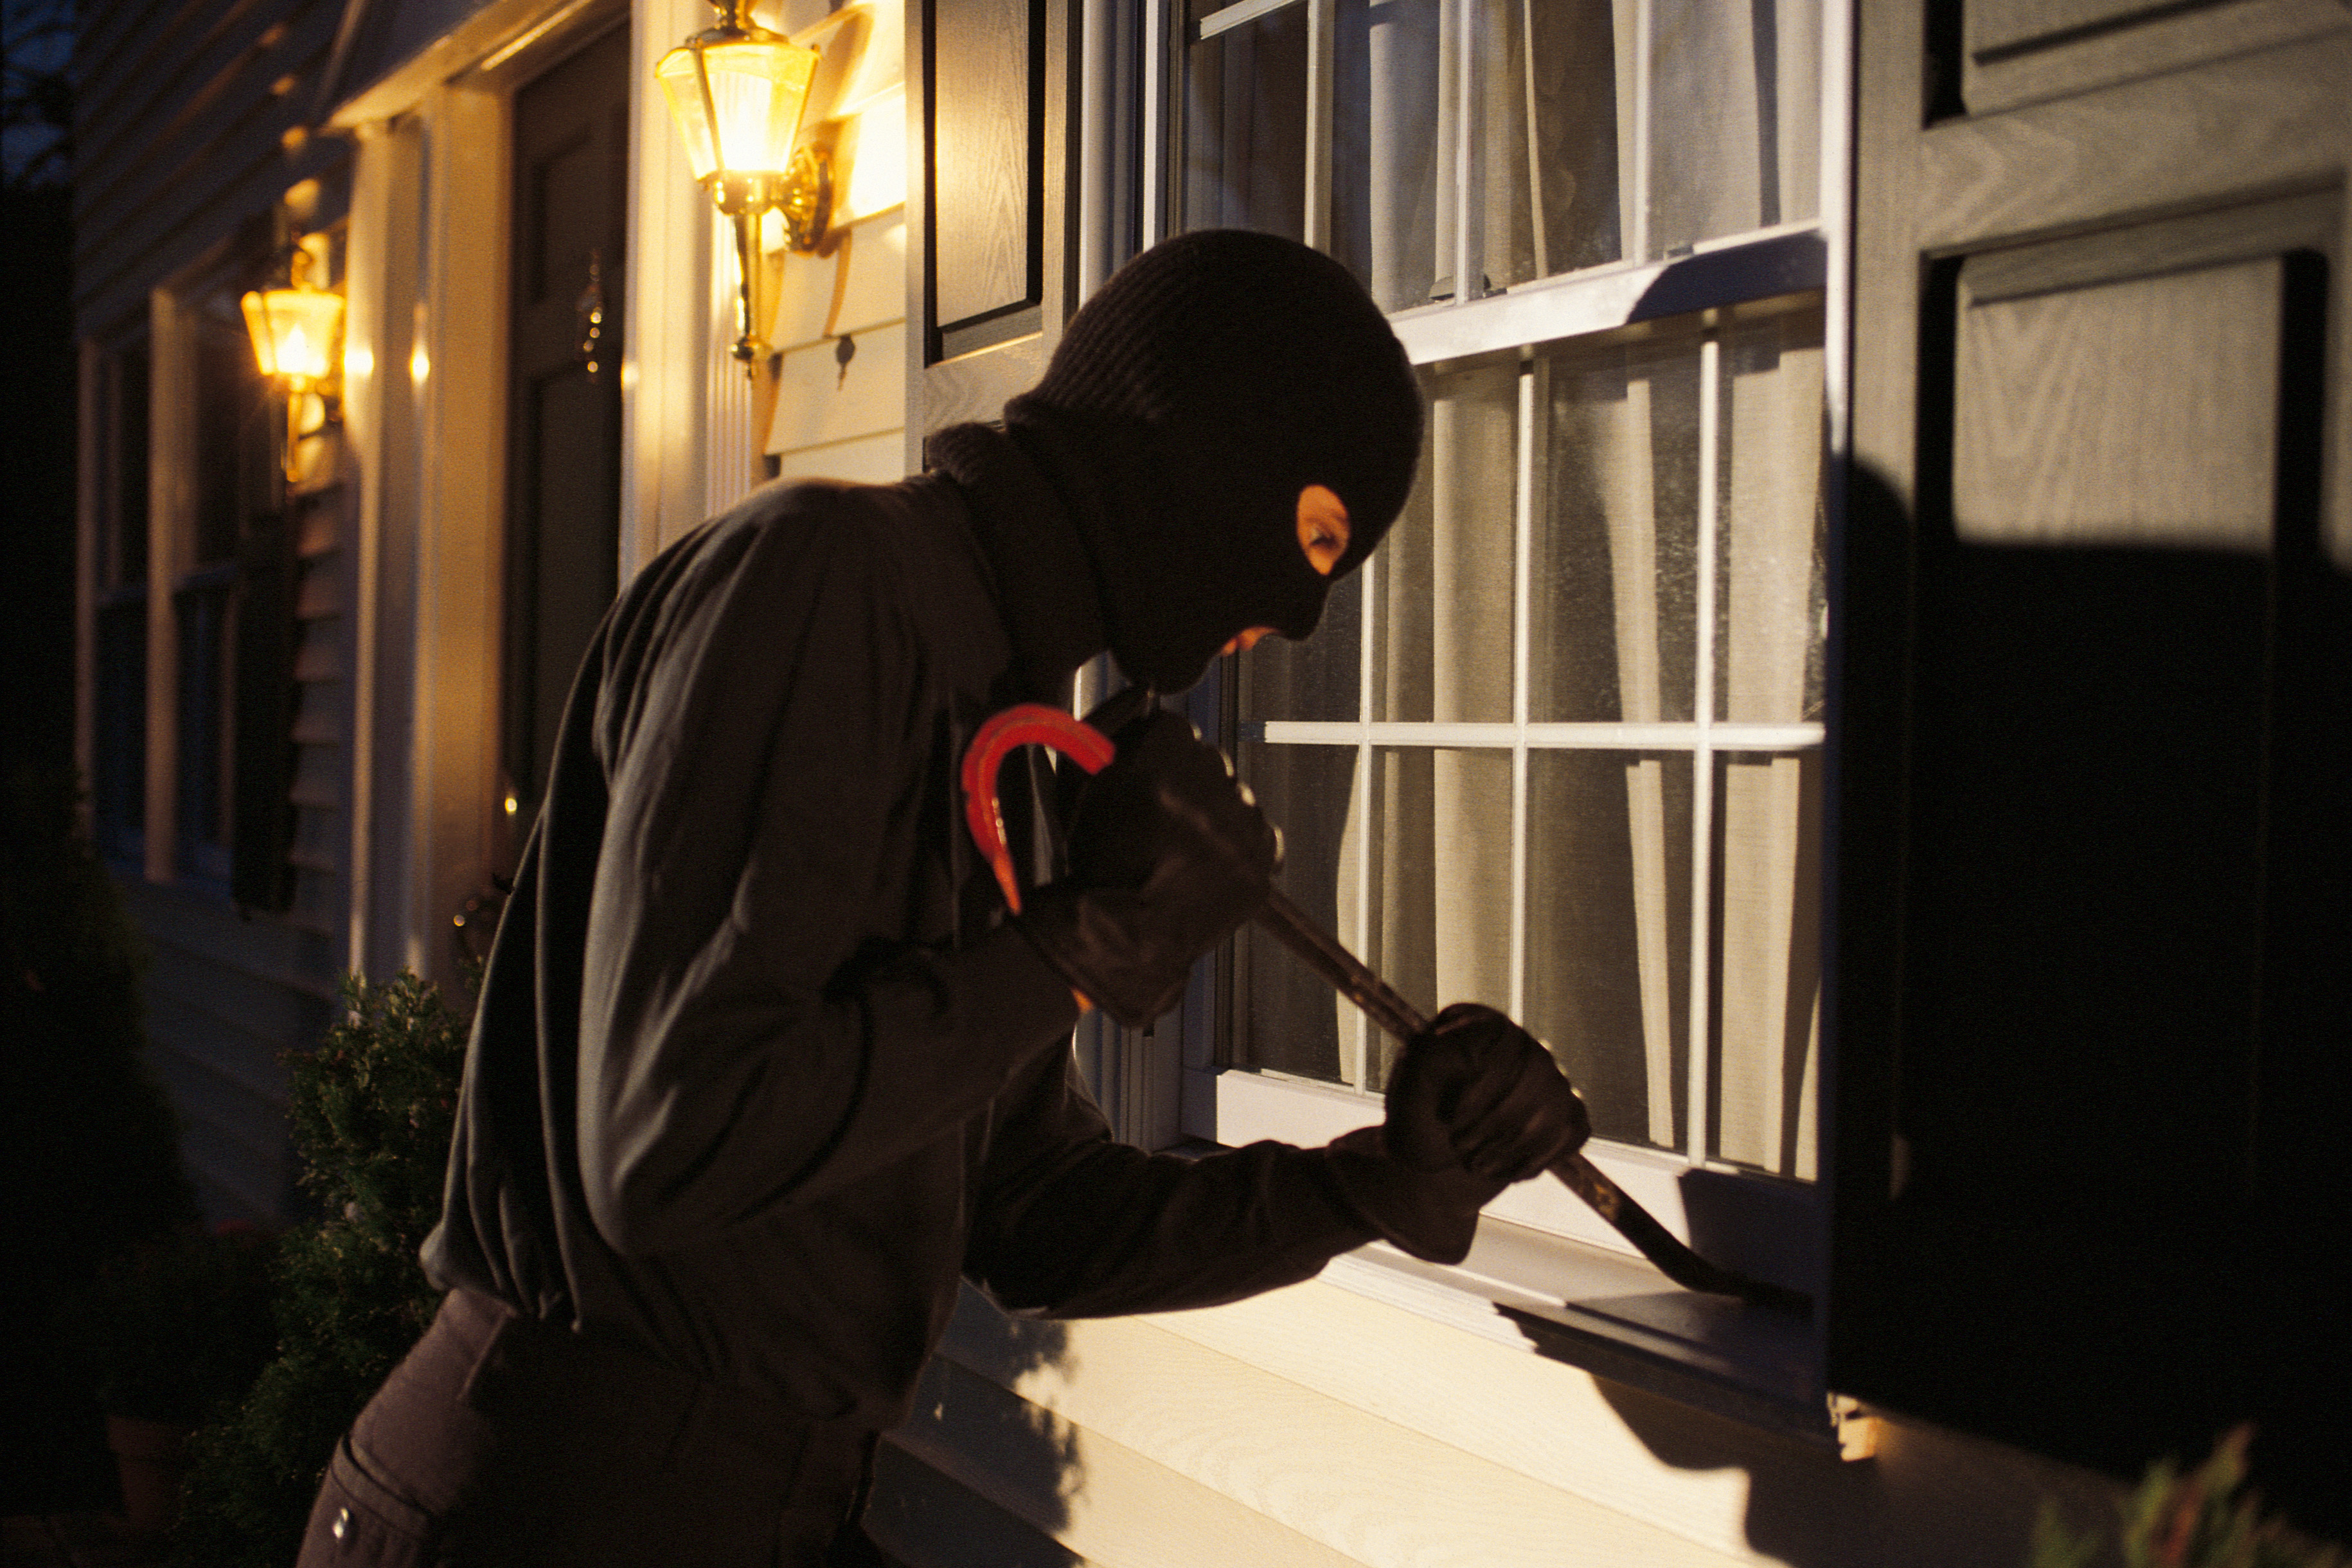 Criminals are changing tactics in an attempt to stay ahead of home and business owners, says police and private security companies.